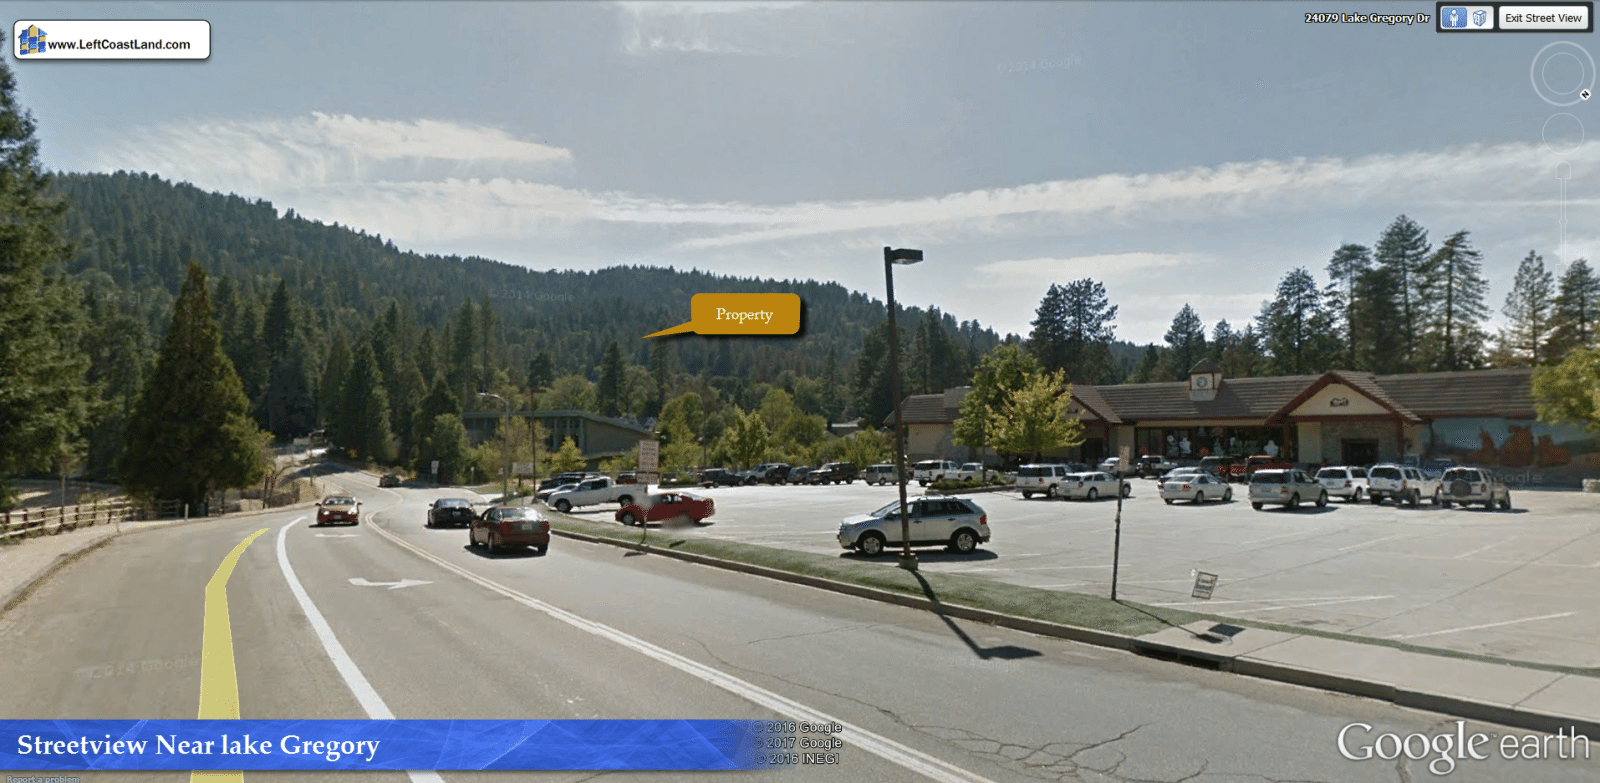 Land For Sale Walk To Lake Gregory Ca